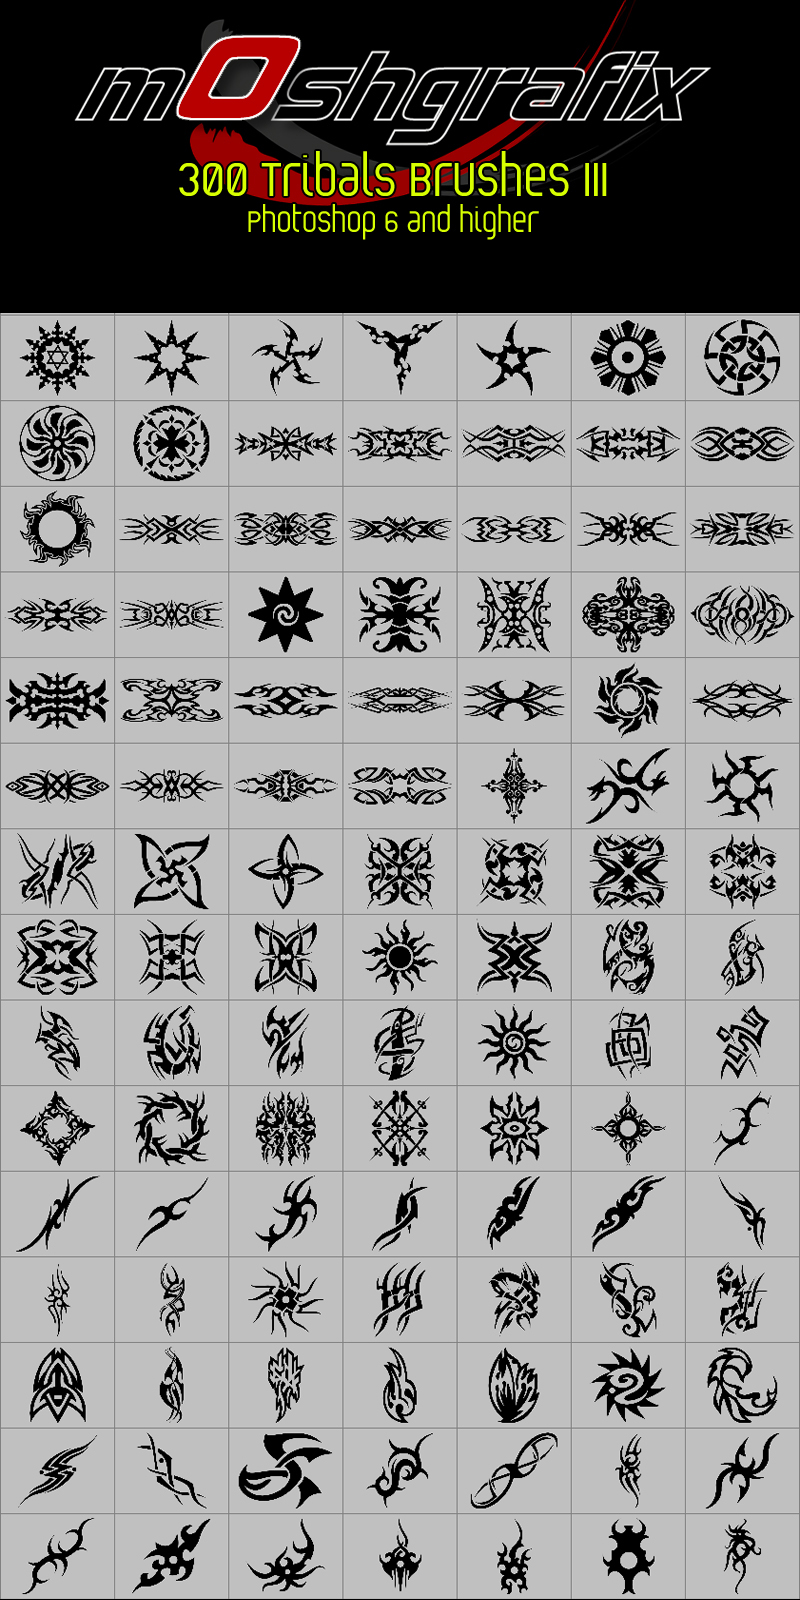 300 Tattoo - Tribal Brushes III